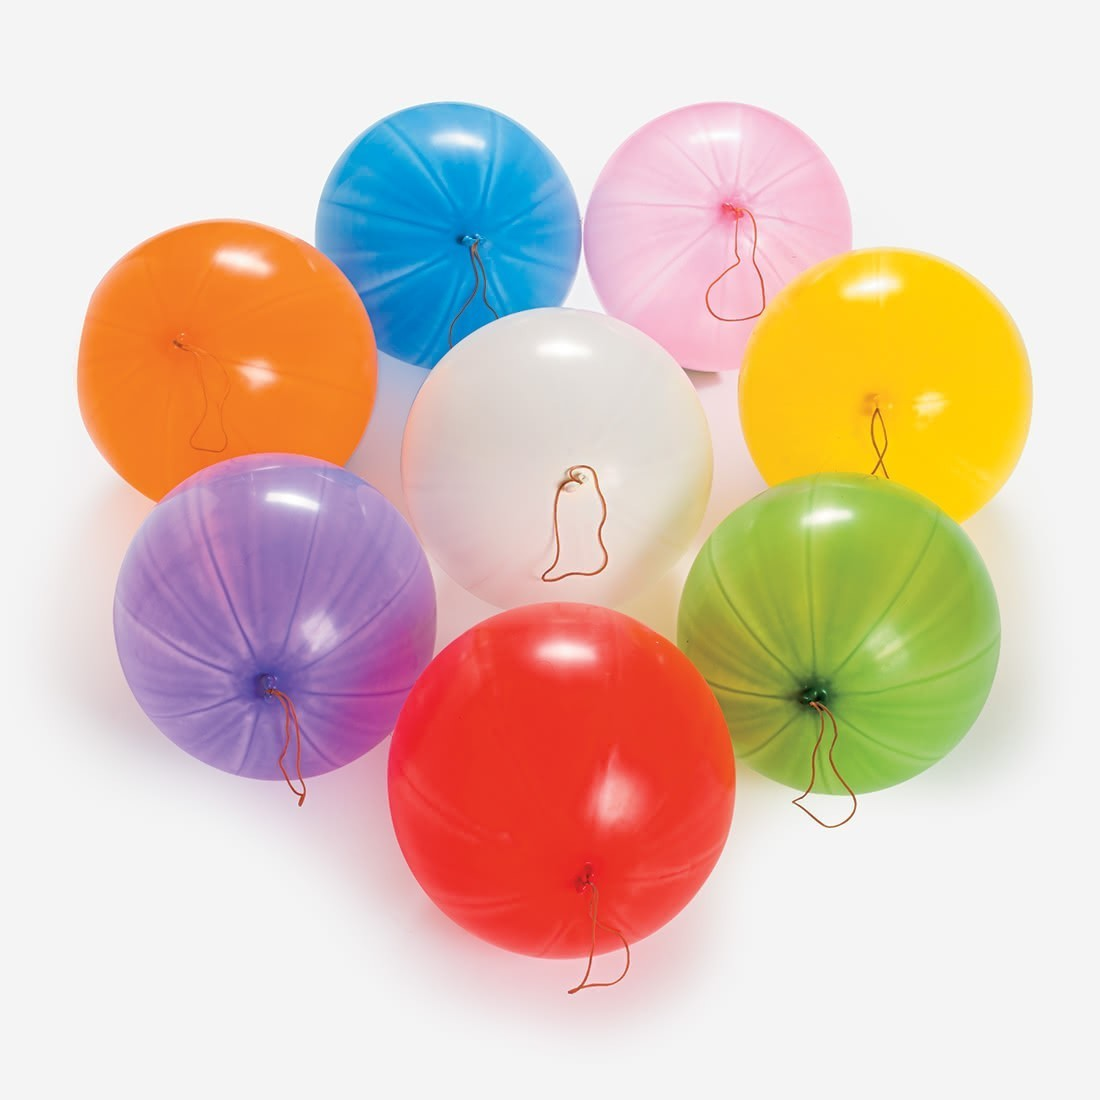 Punching Balloons Budget Pack [image]